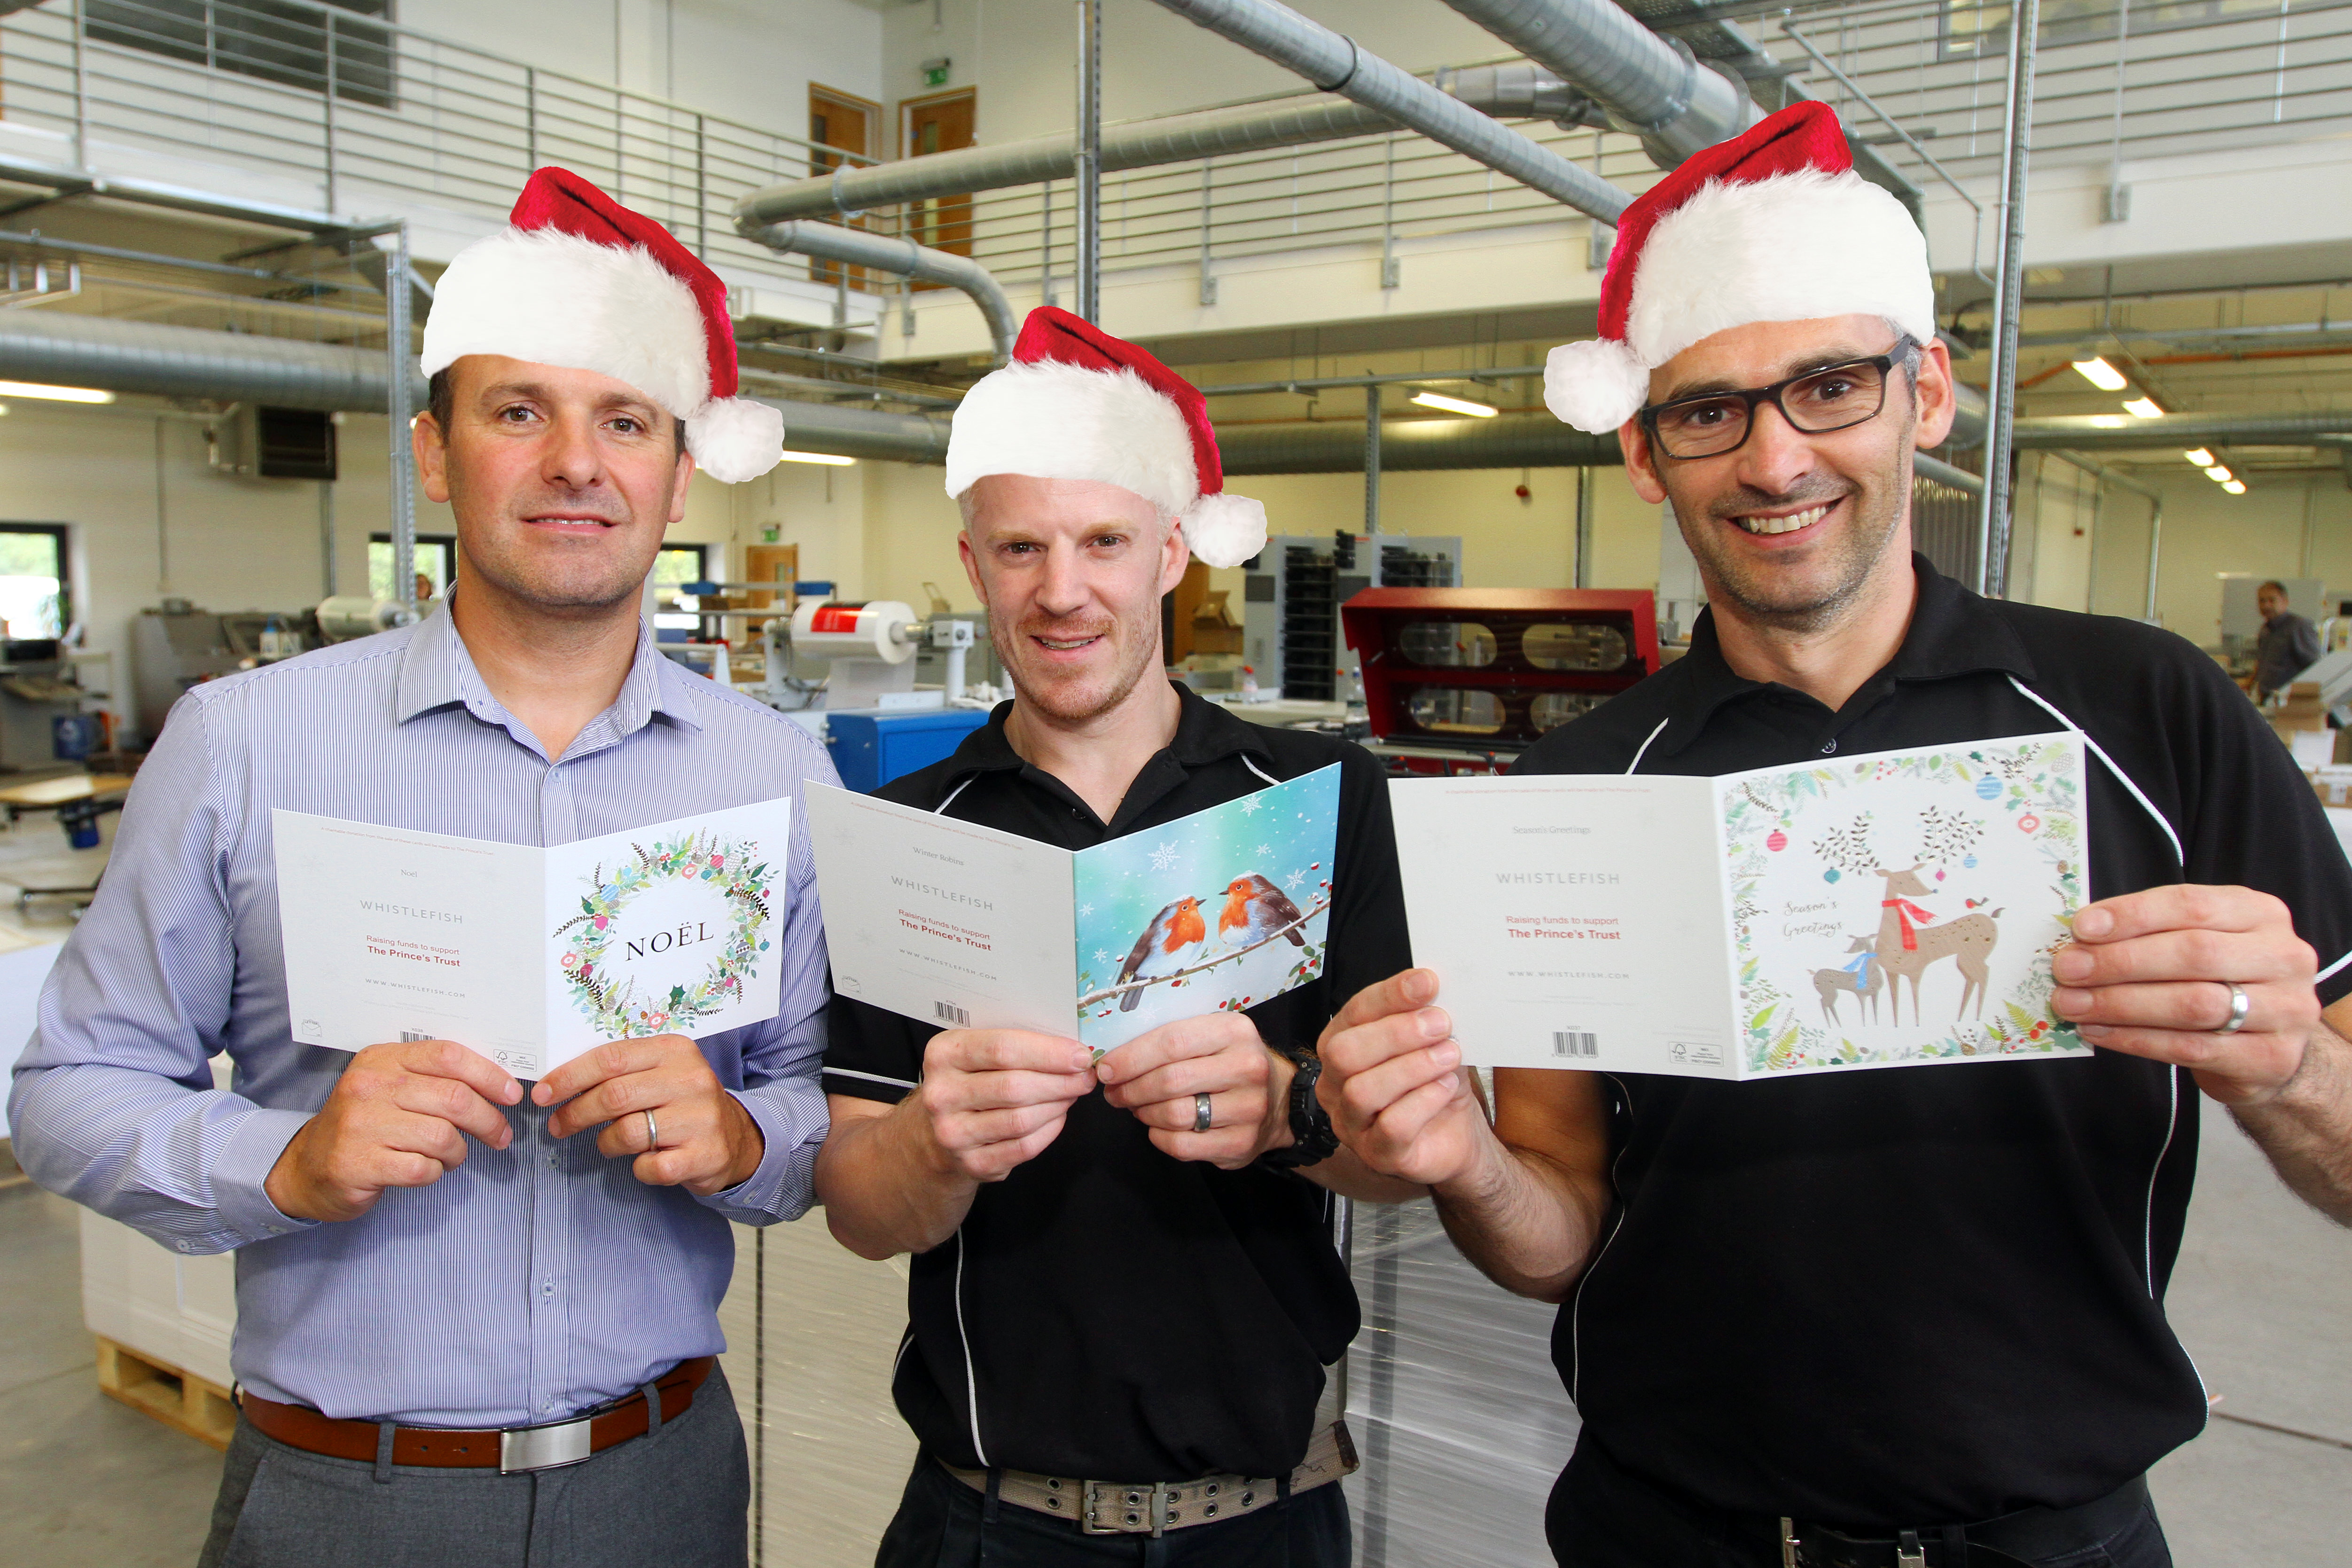 St austell printing company gets in the festive spirit in july m4hsunfo